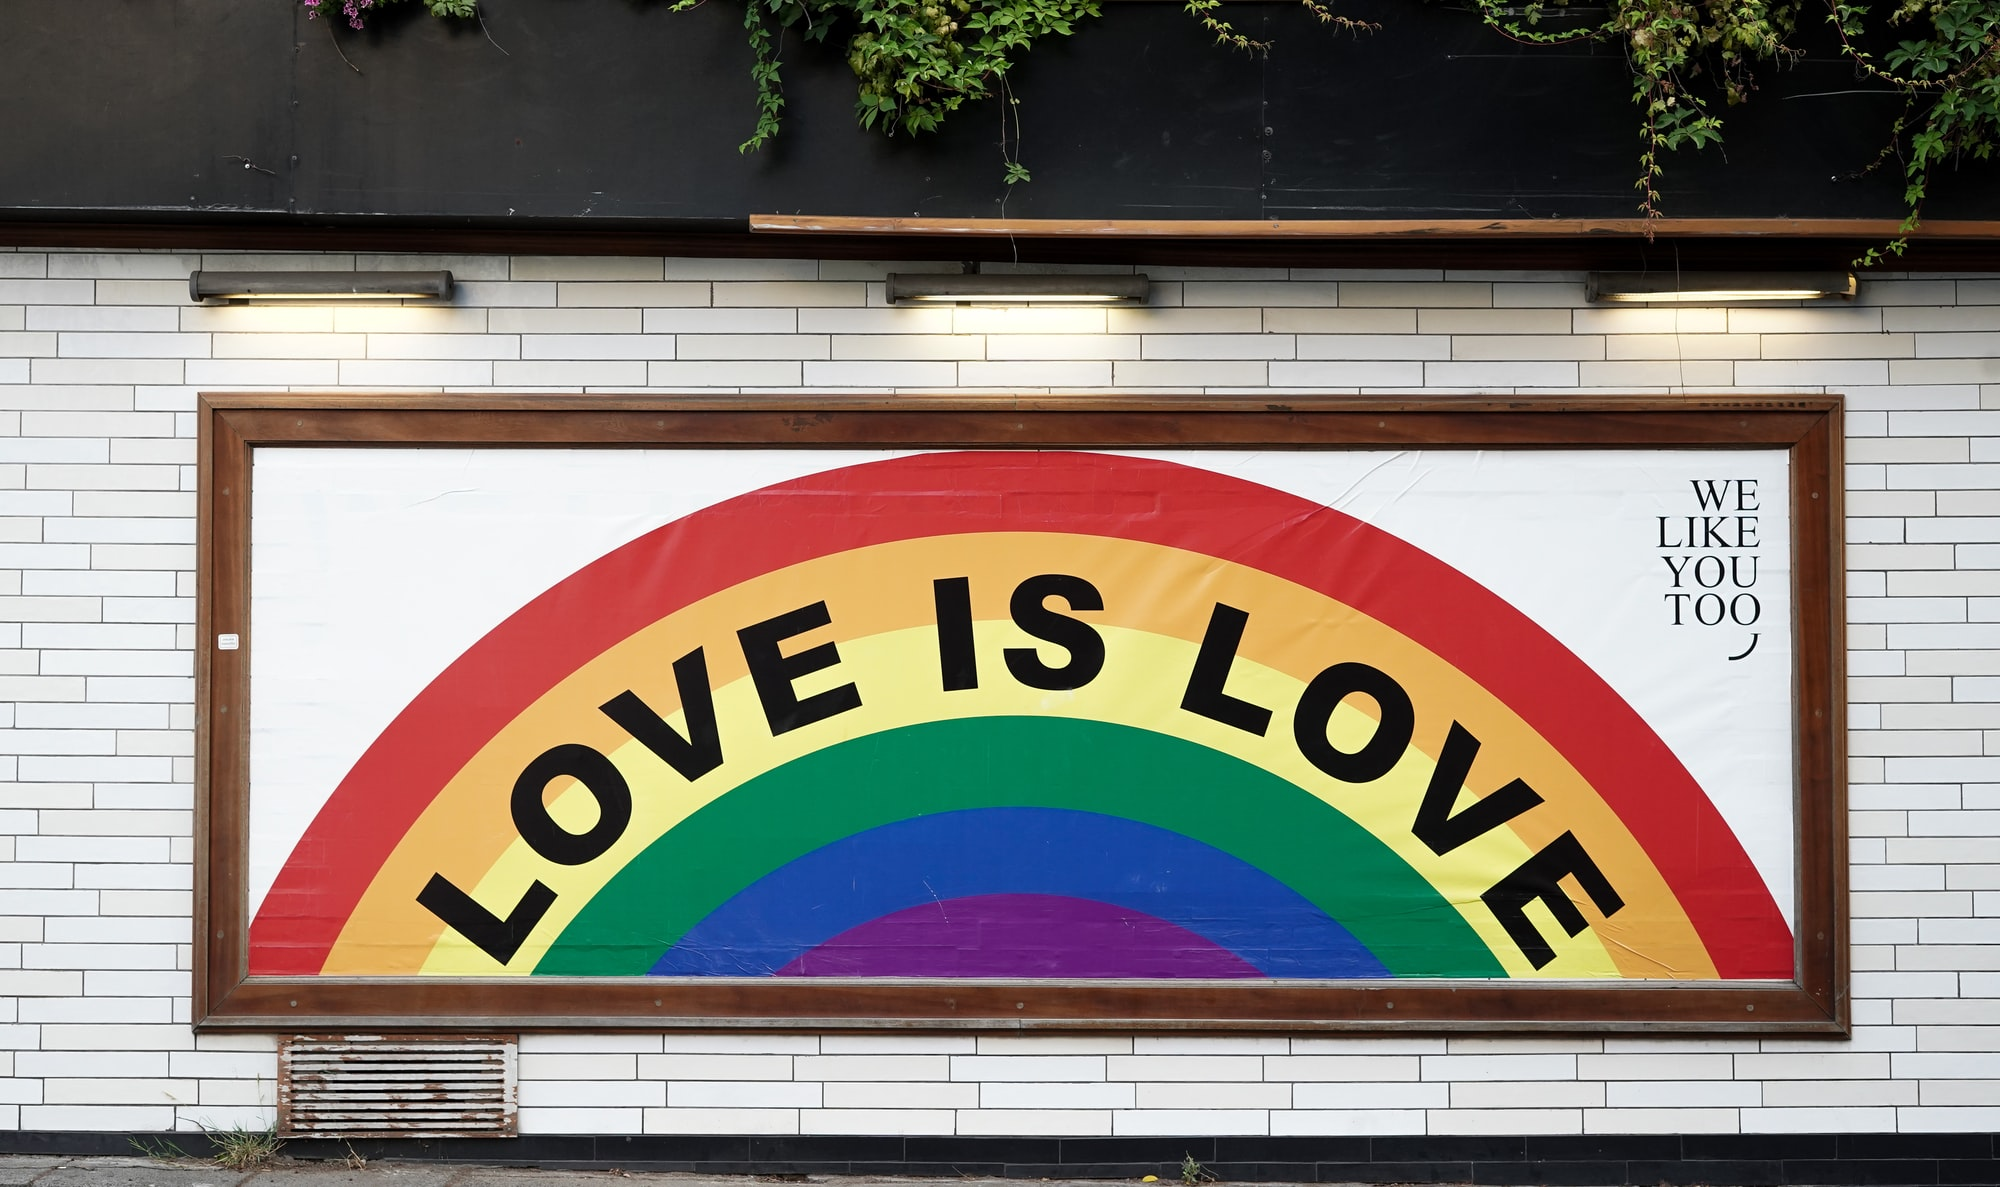 LGBTQ safety & rights are a work in progress